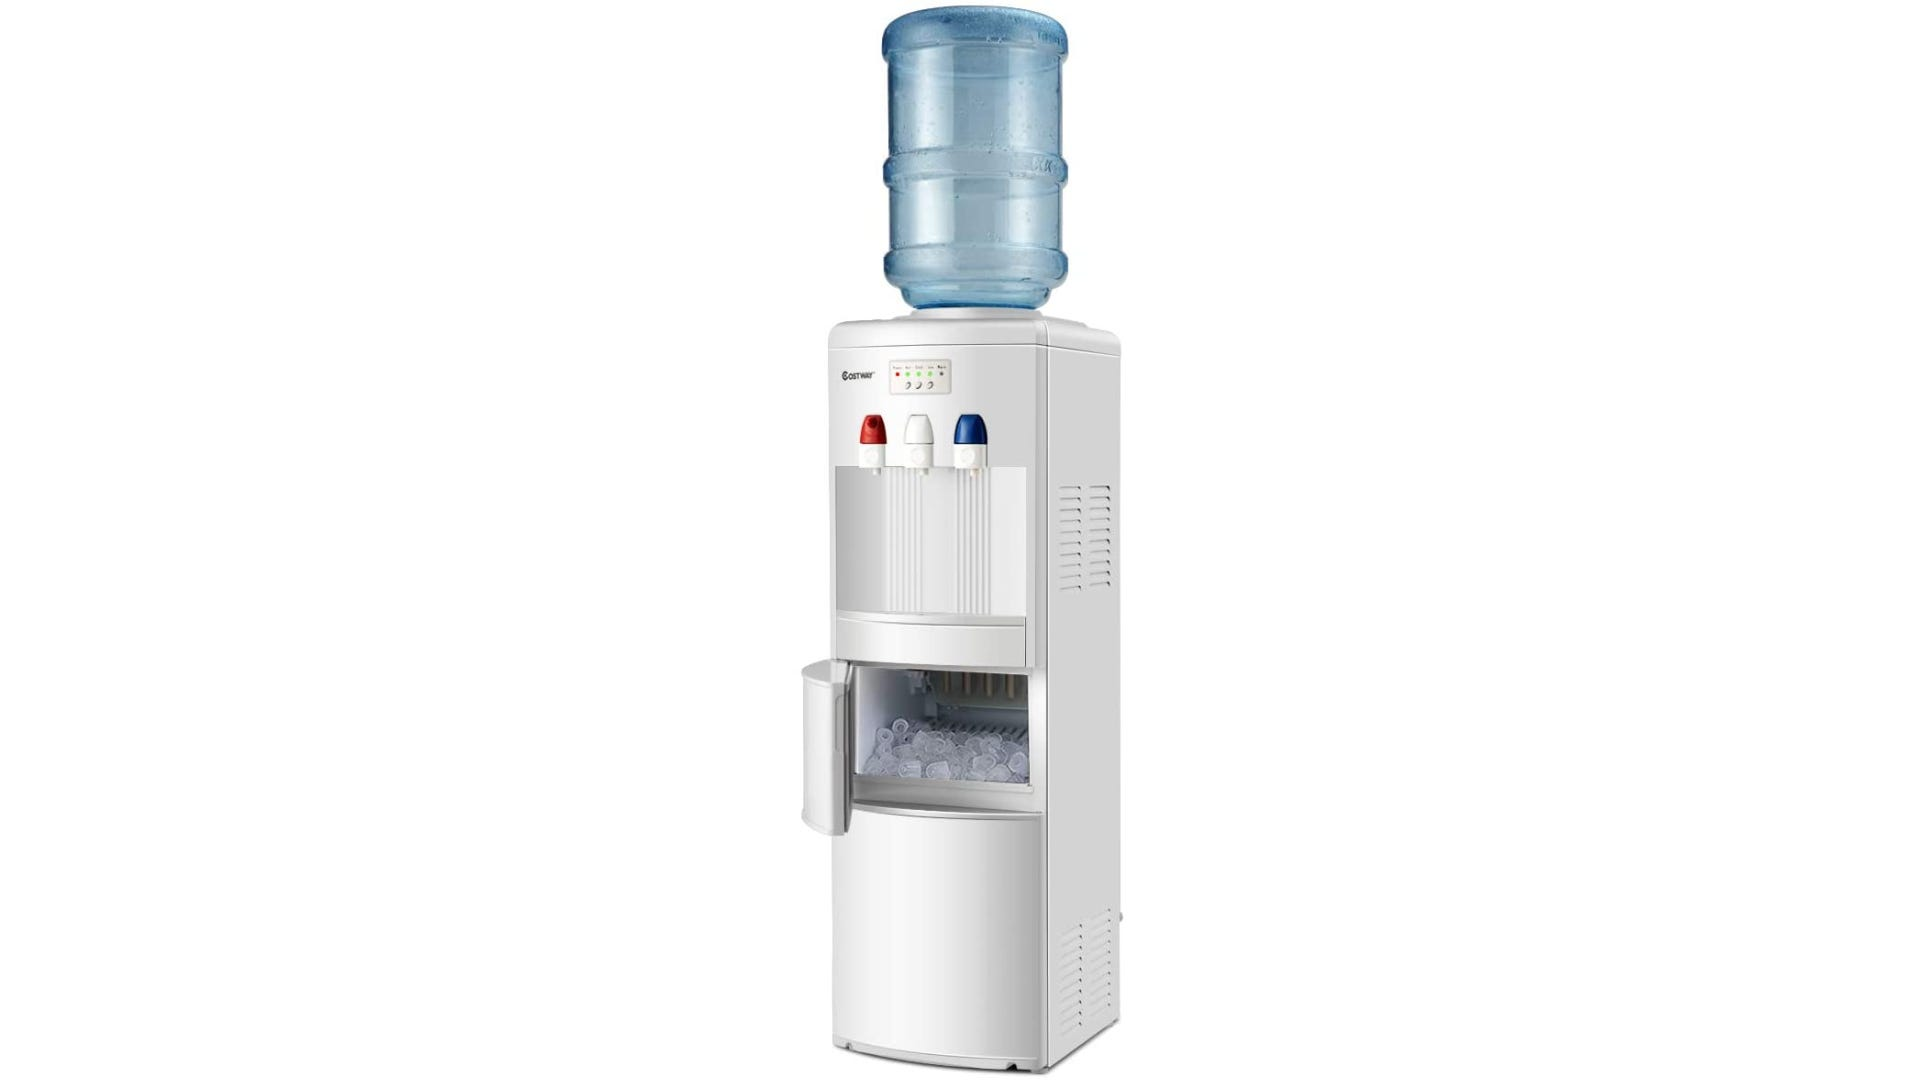 A white water cooler with a blue water jug and a open ice compartment.